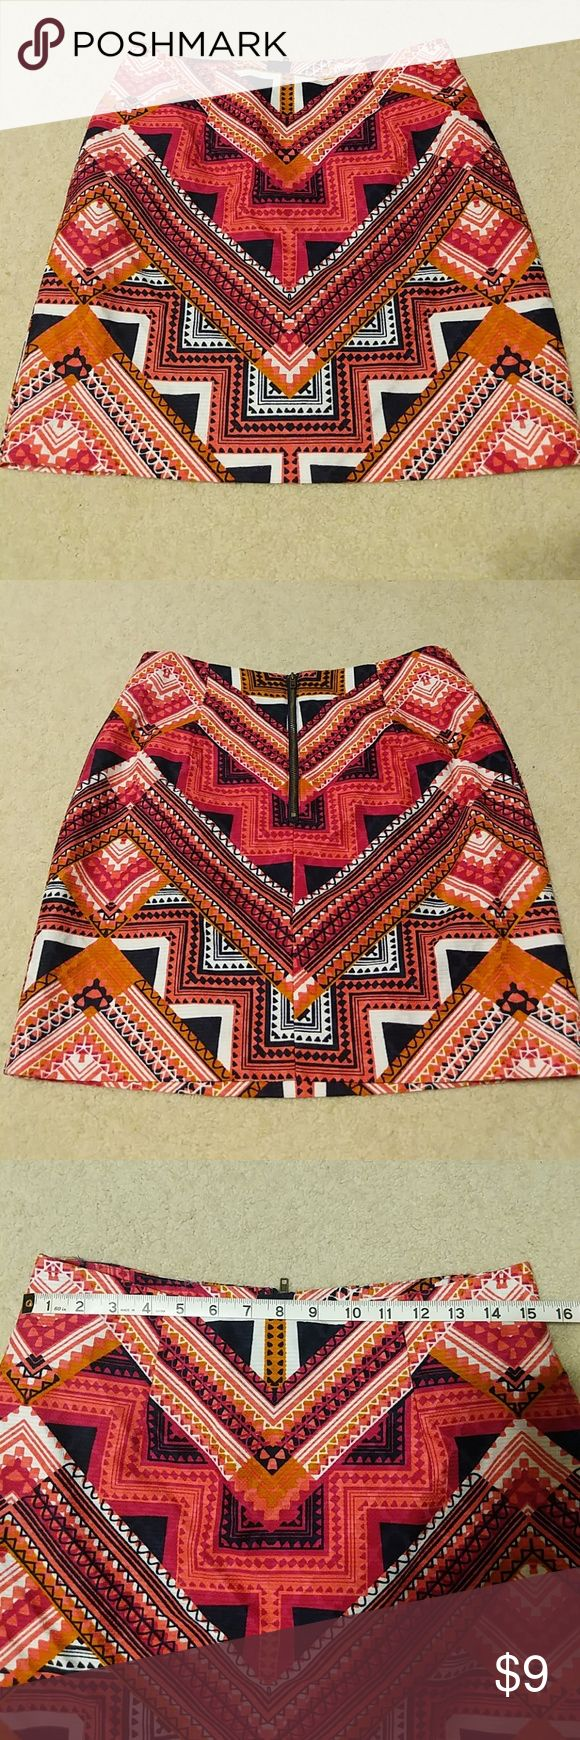 🍀Merona Aztec print skirt Adorable Aztec print skirt! Perfect length for work. Looked great with a turtle neck and knee high boots! Merona Skirts